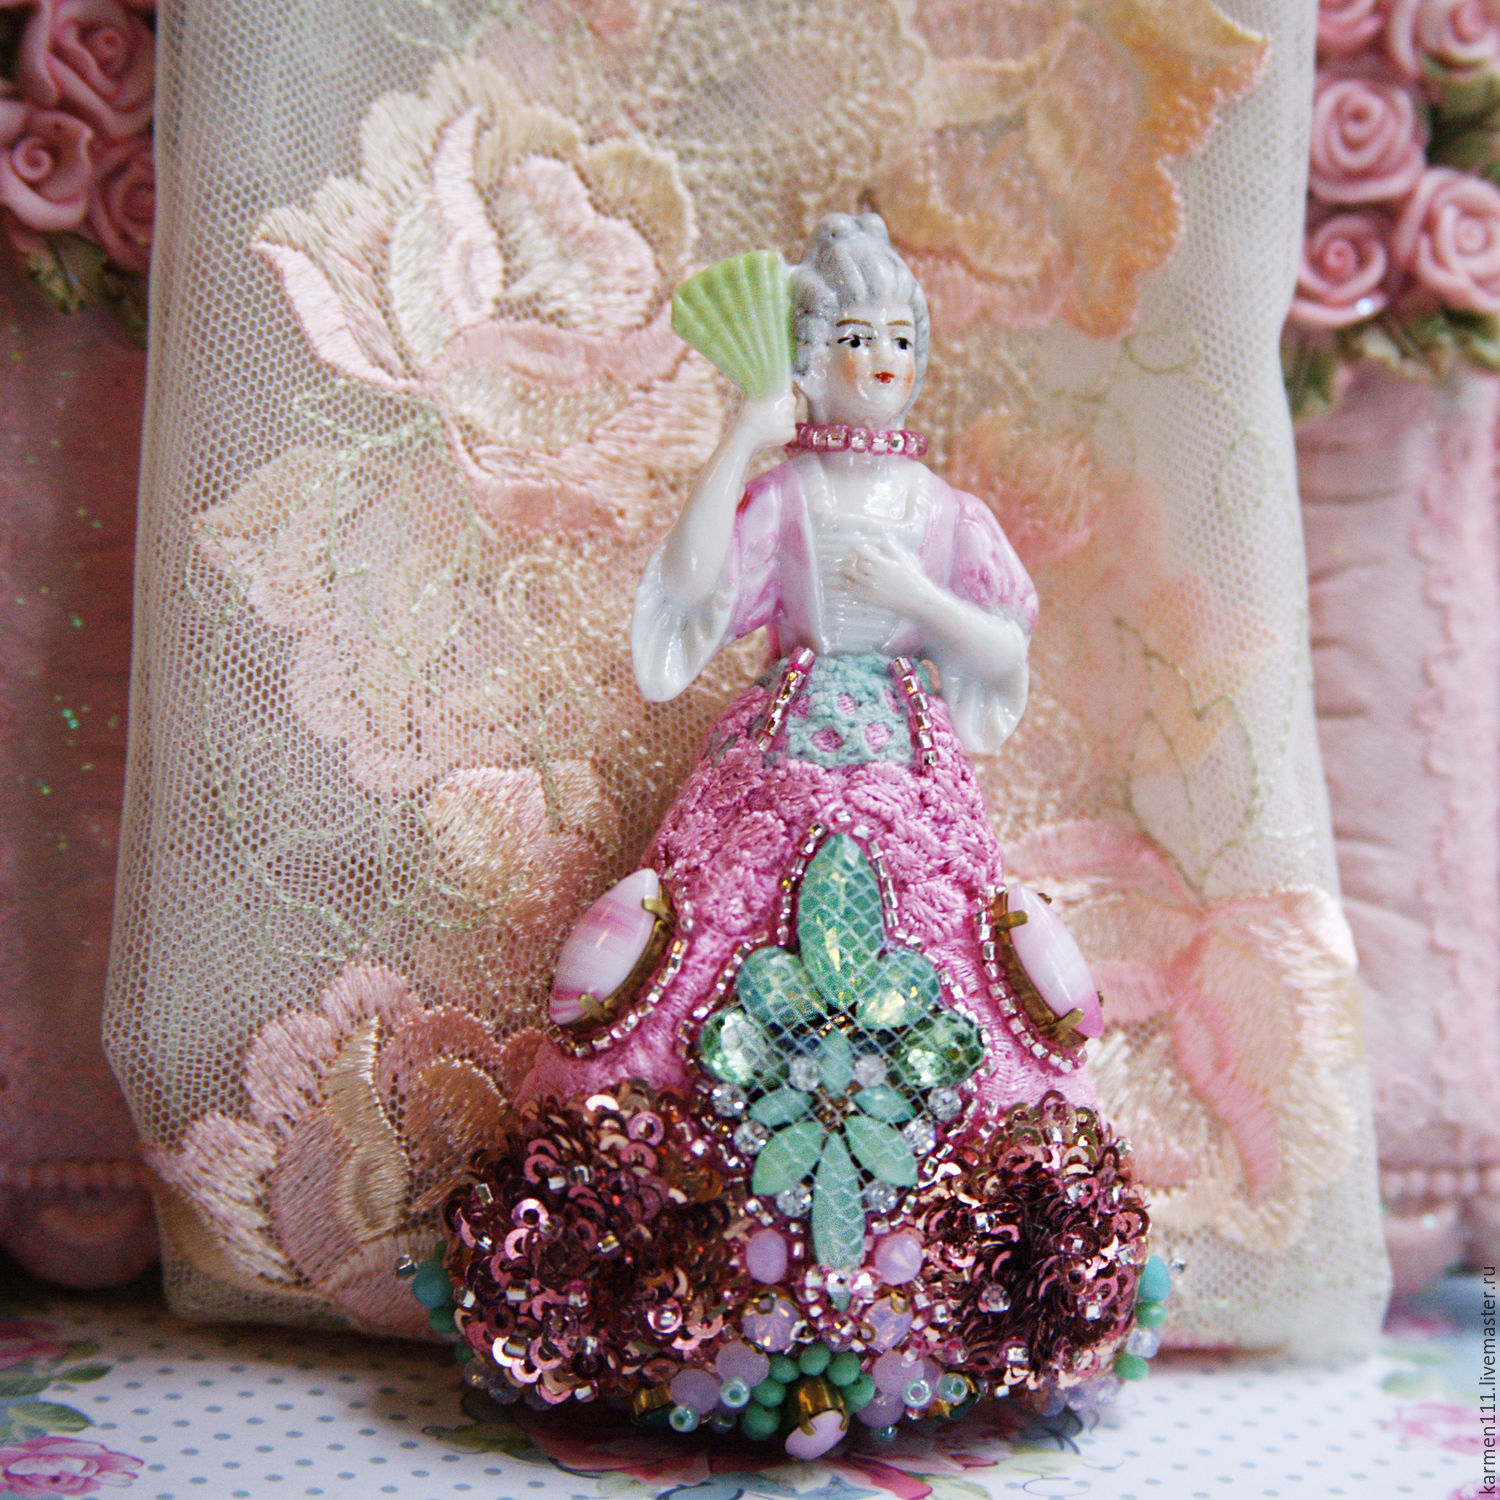 """Brooch handmade """"Marquise de Pompadour"""" in vintage style, Brooches, Moscow,  Фото №1"""